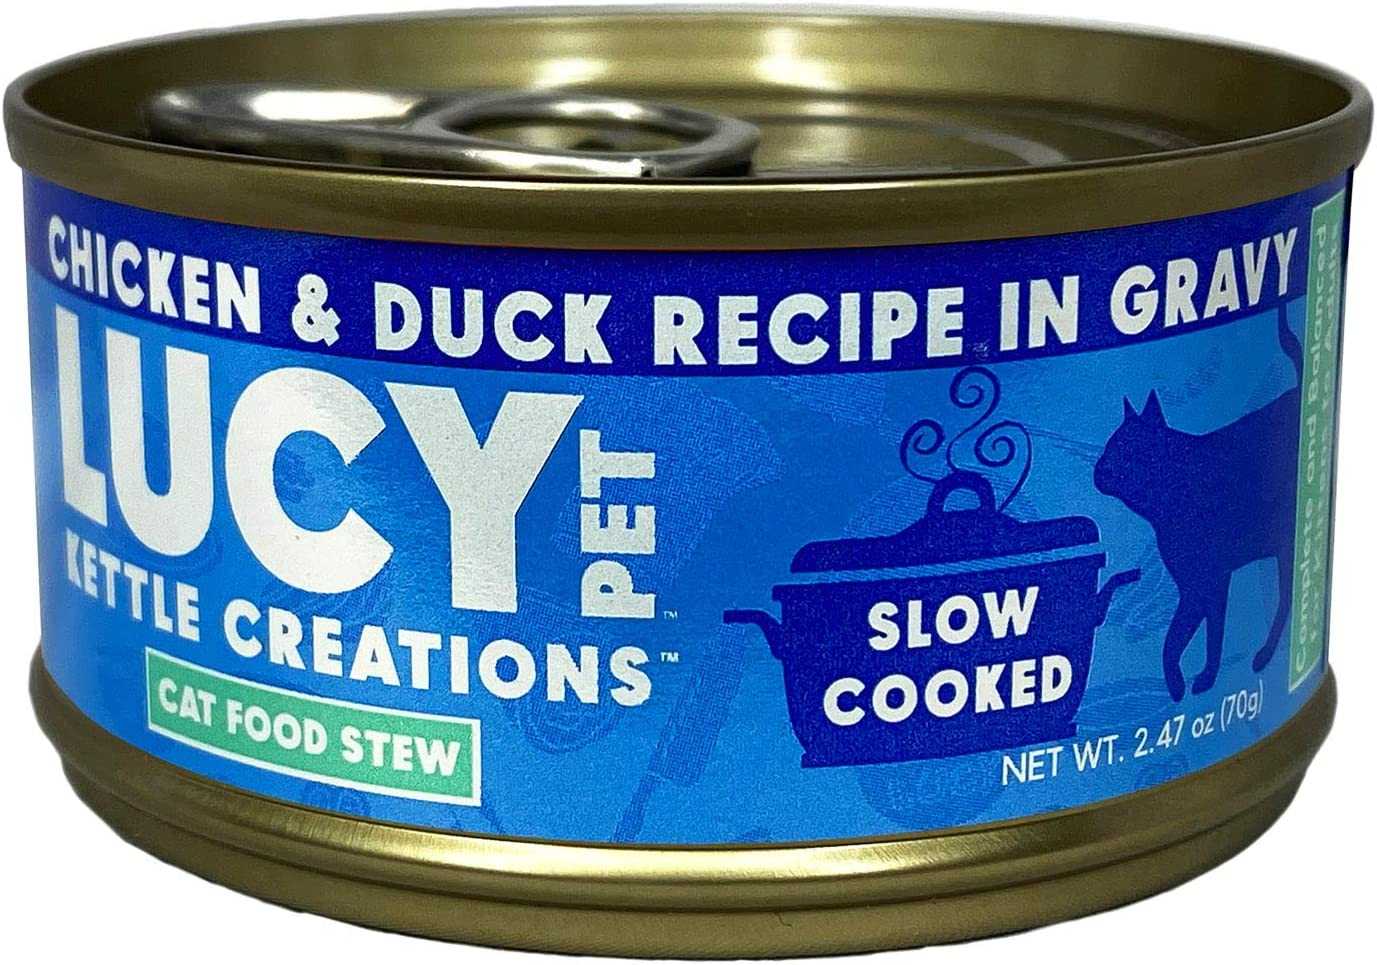 Lucy Pet Products Kettle Creations Chicken and Duck Cat Stew Recipe in Gravy 2.47oz, Blue (LPPFFLW400)